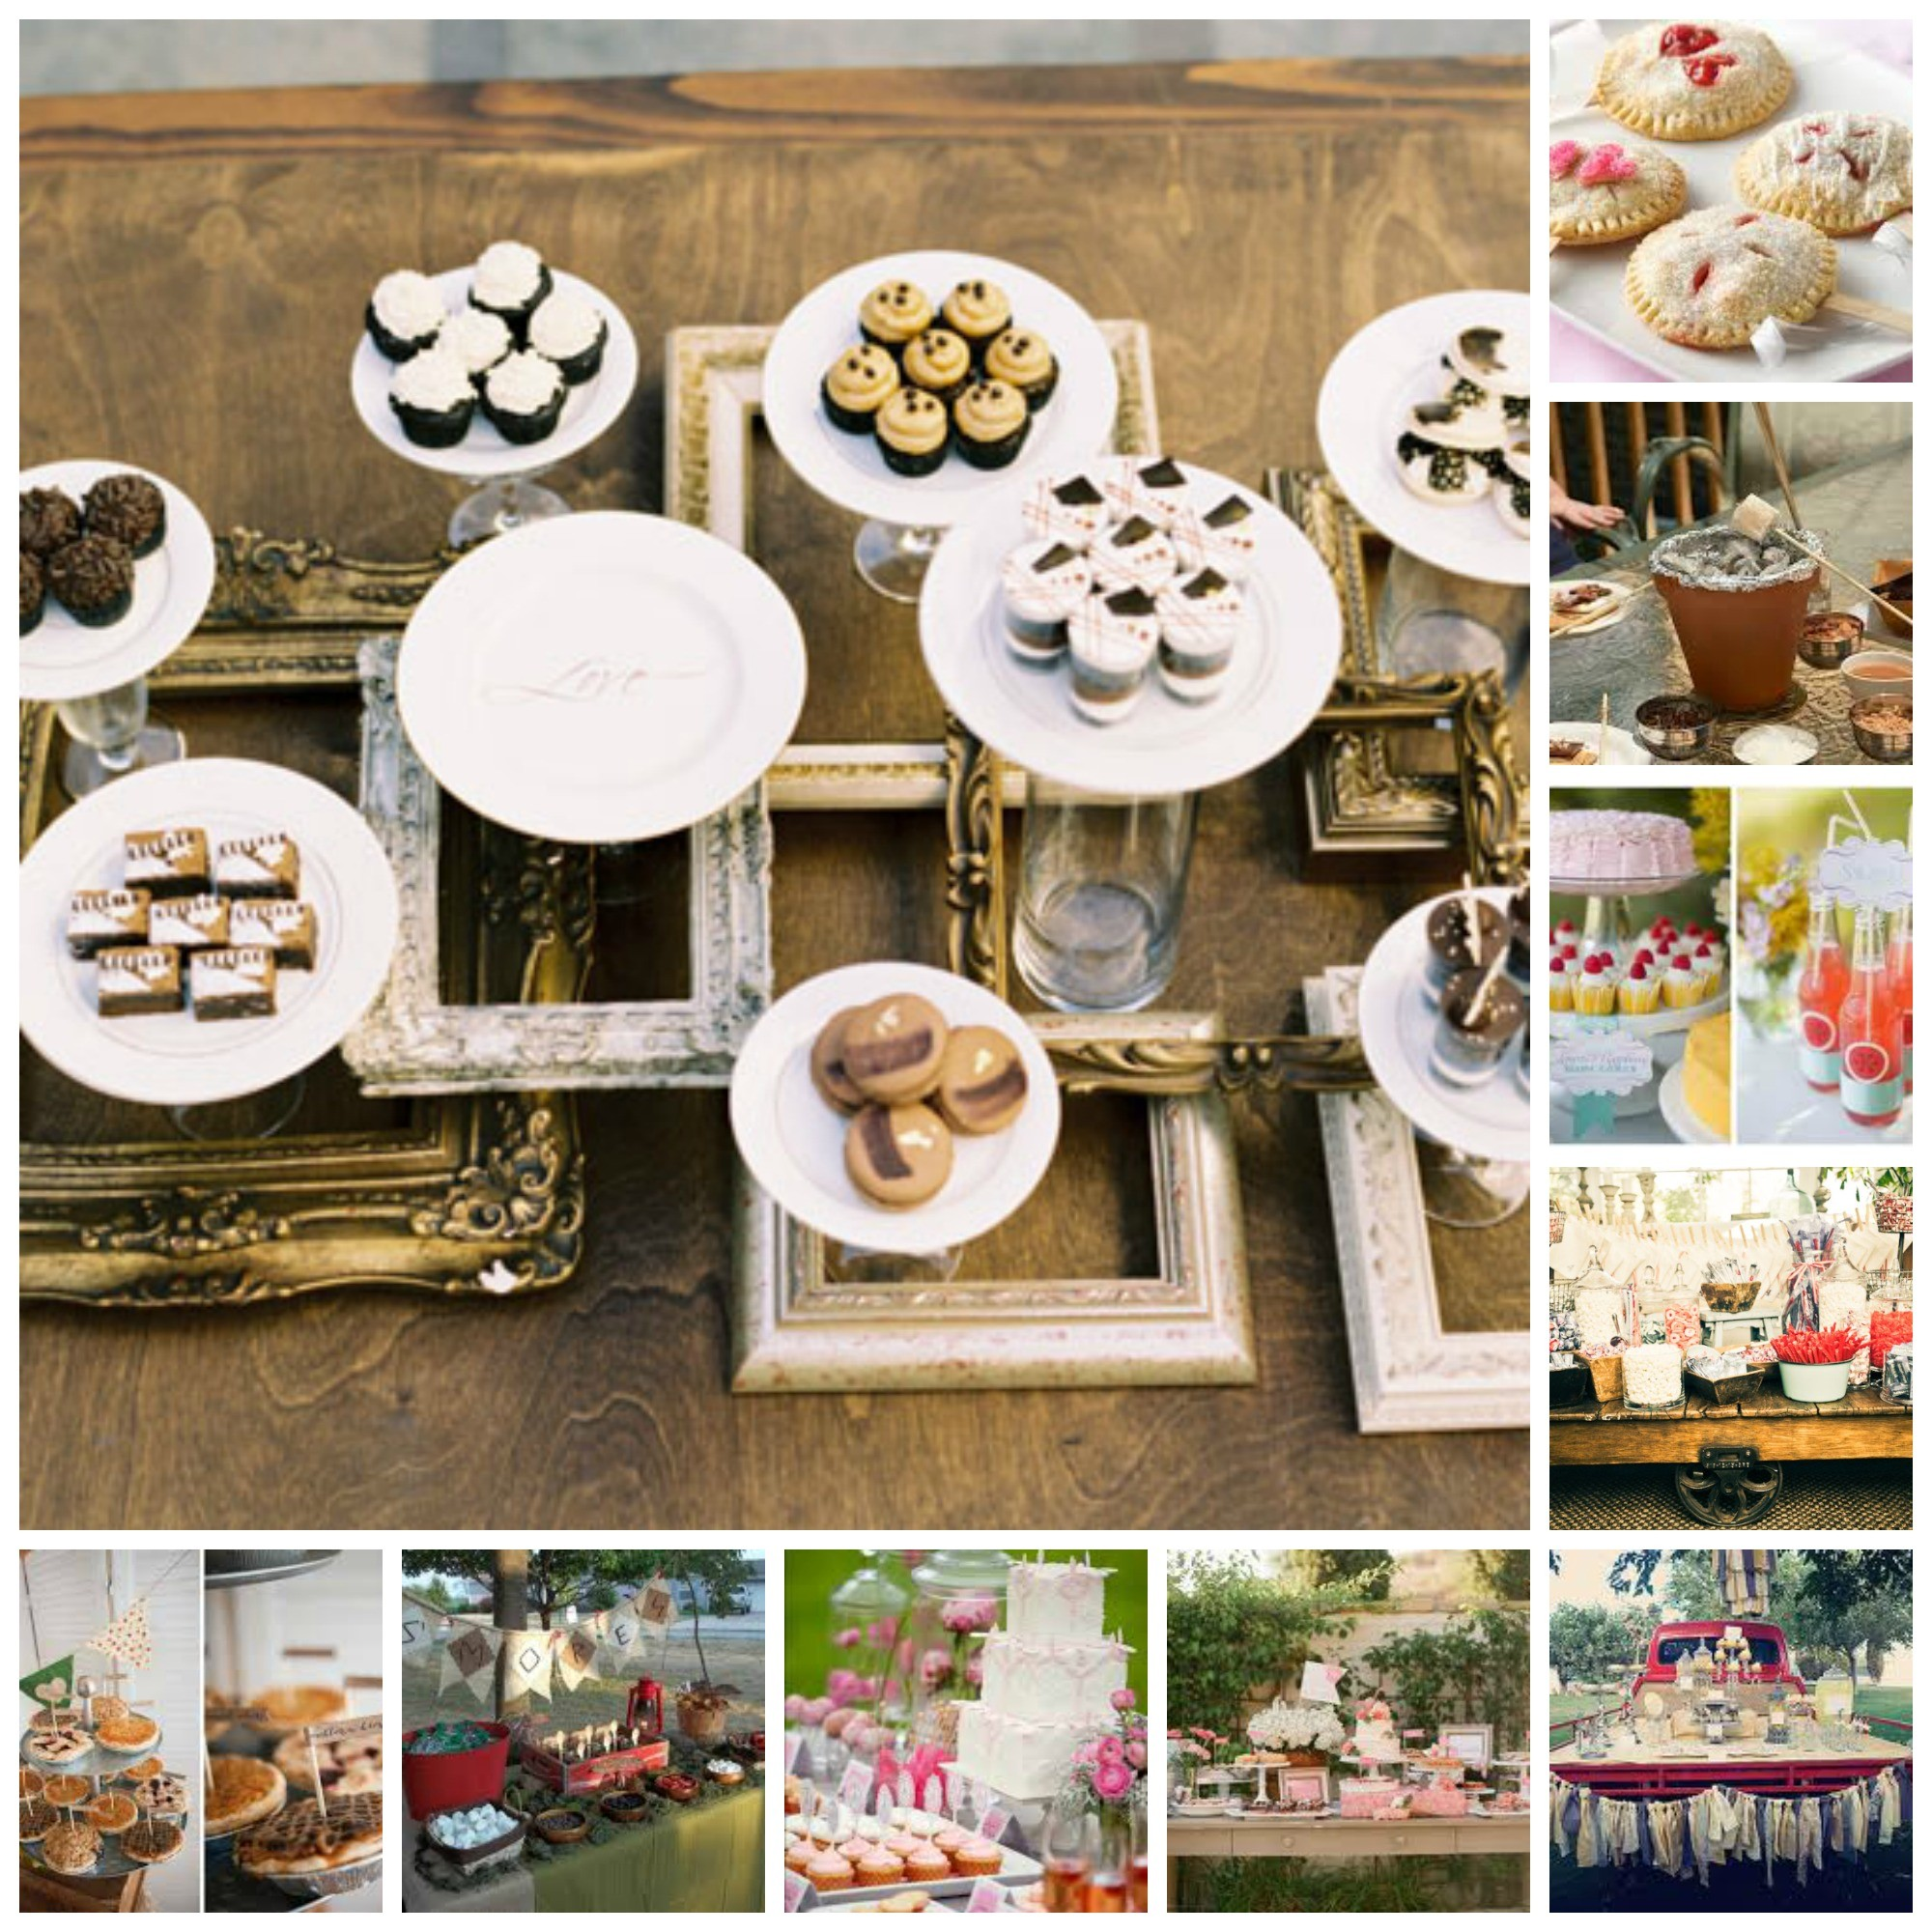 Wedding dessert bar ideas with a fun twist